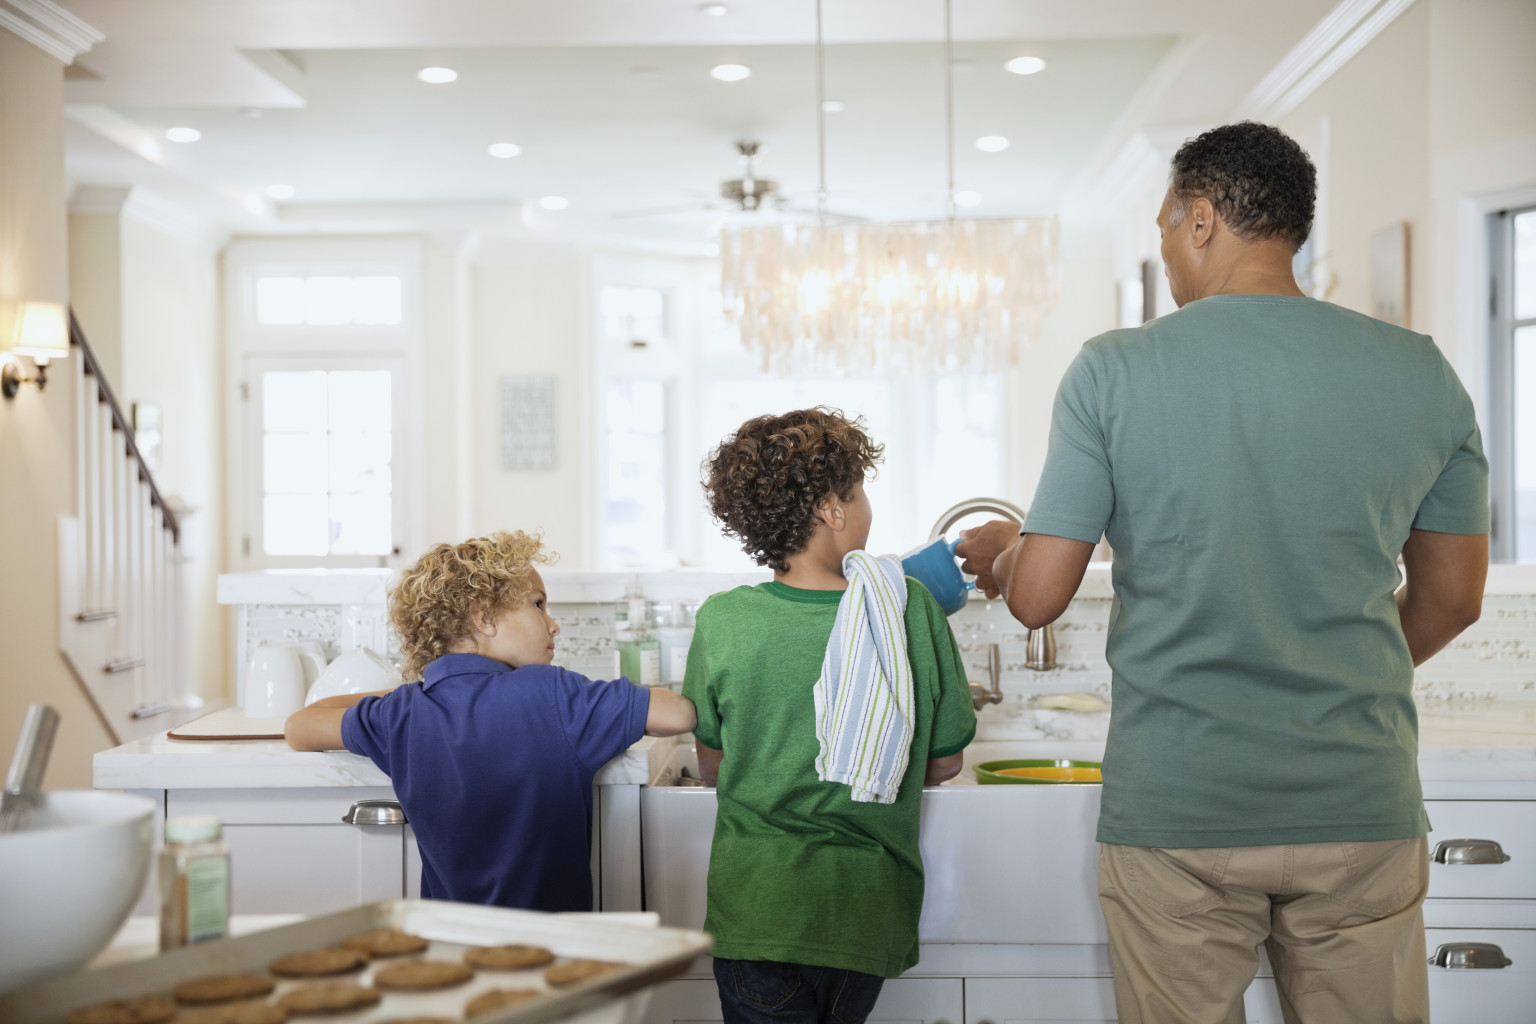 Clorox Insults Dads Claims It Was Trying To Be Funny